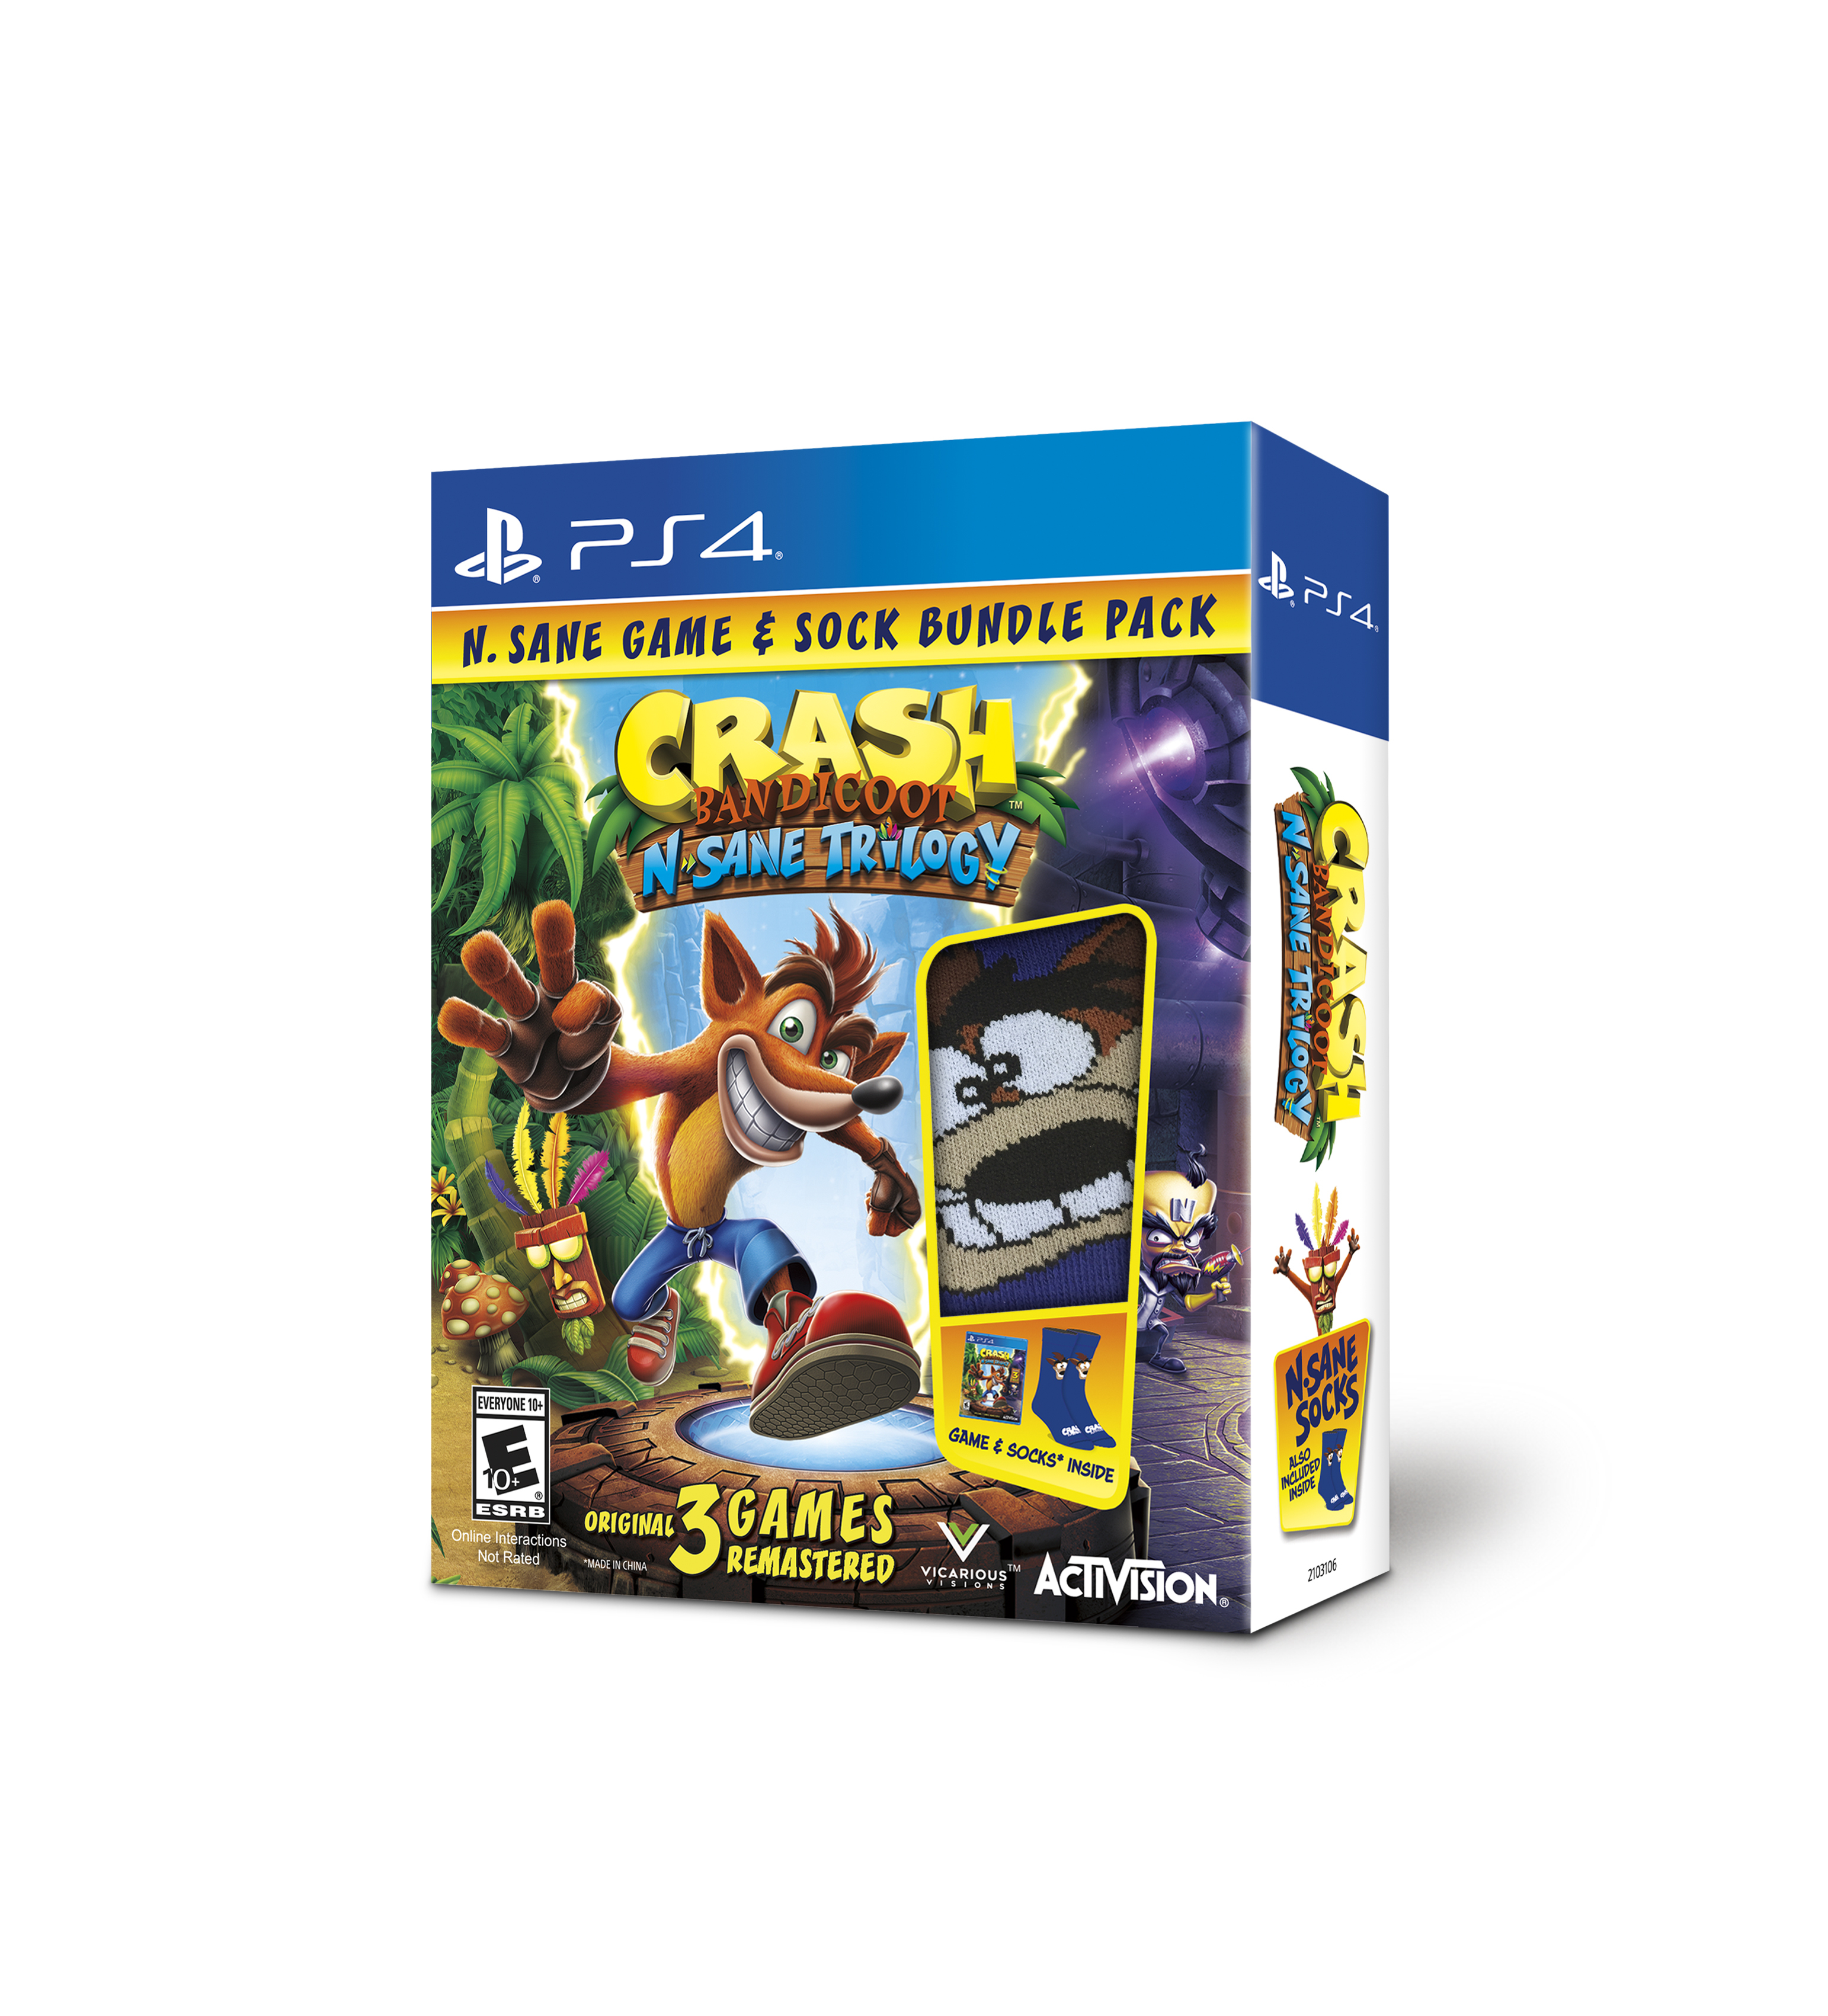 n sane offerings this holiday for the crash bandicoot n sane